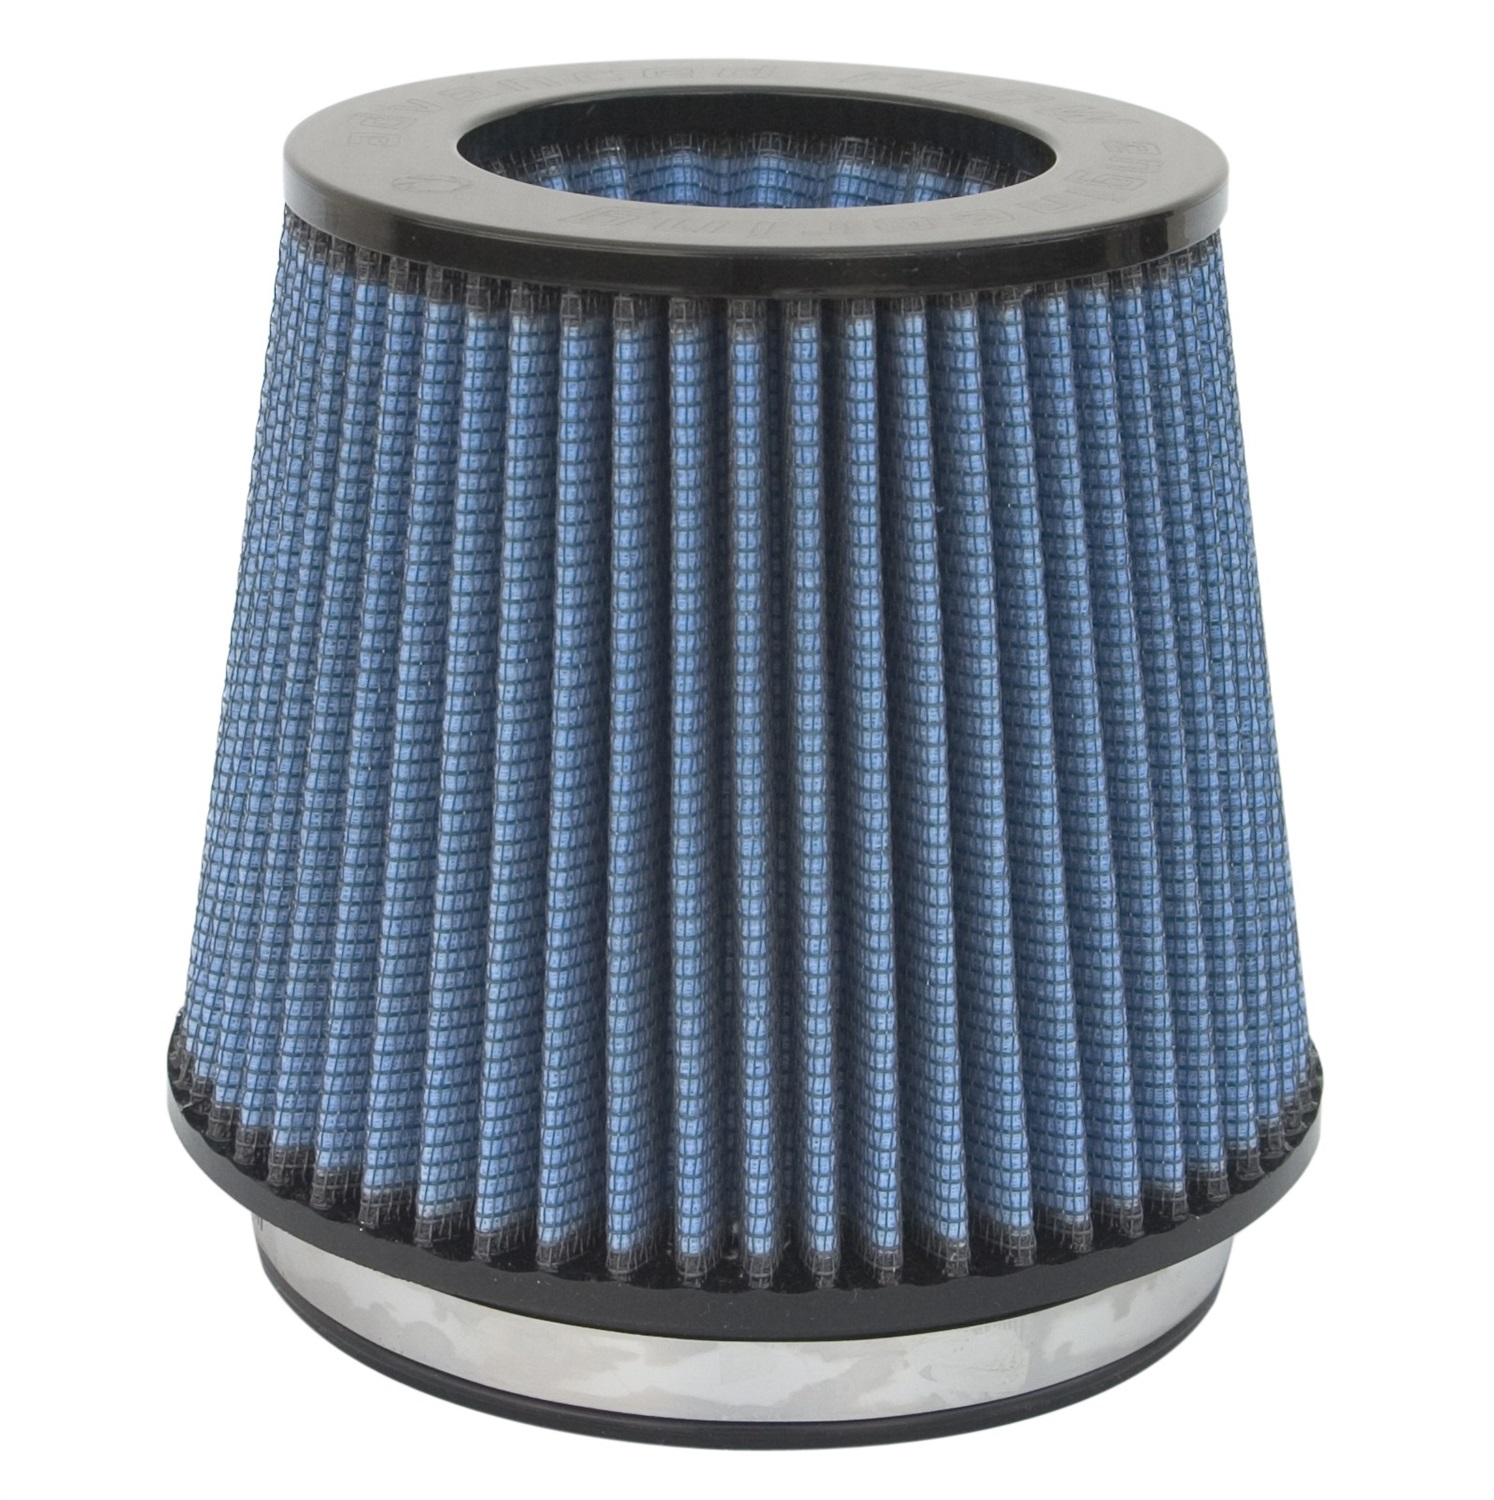 aFe Power 24-91021 MagnumFLOW Intake PRO 5R Air Filter 24-91021